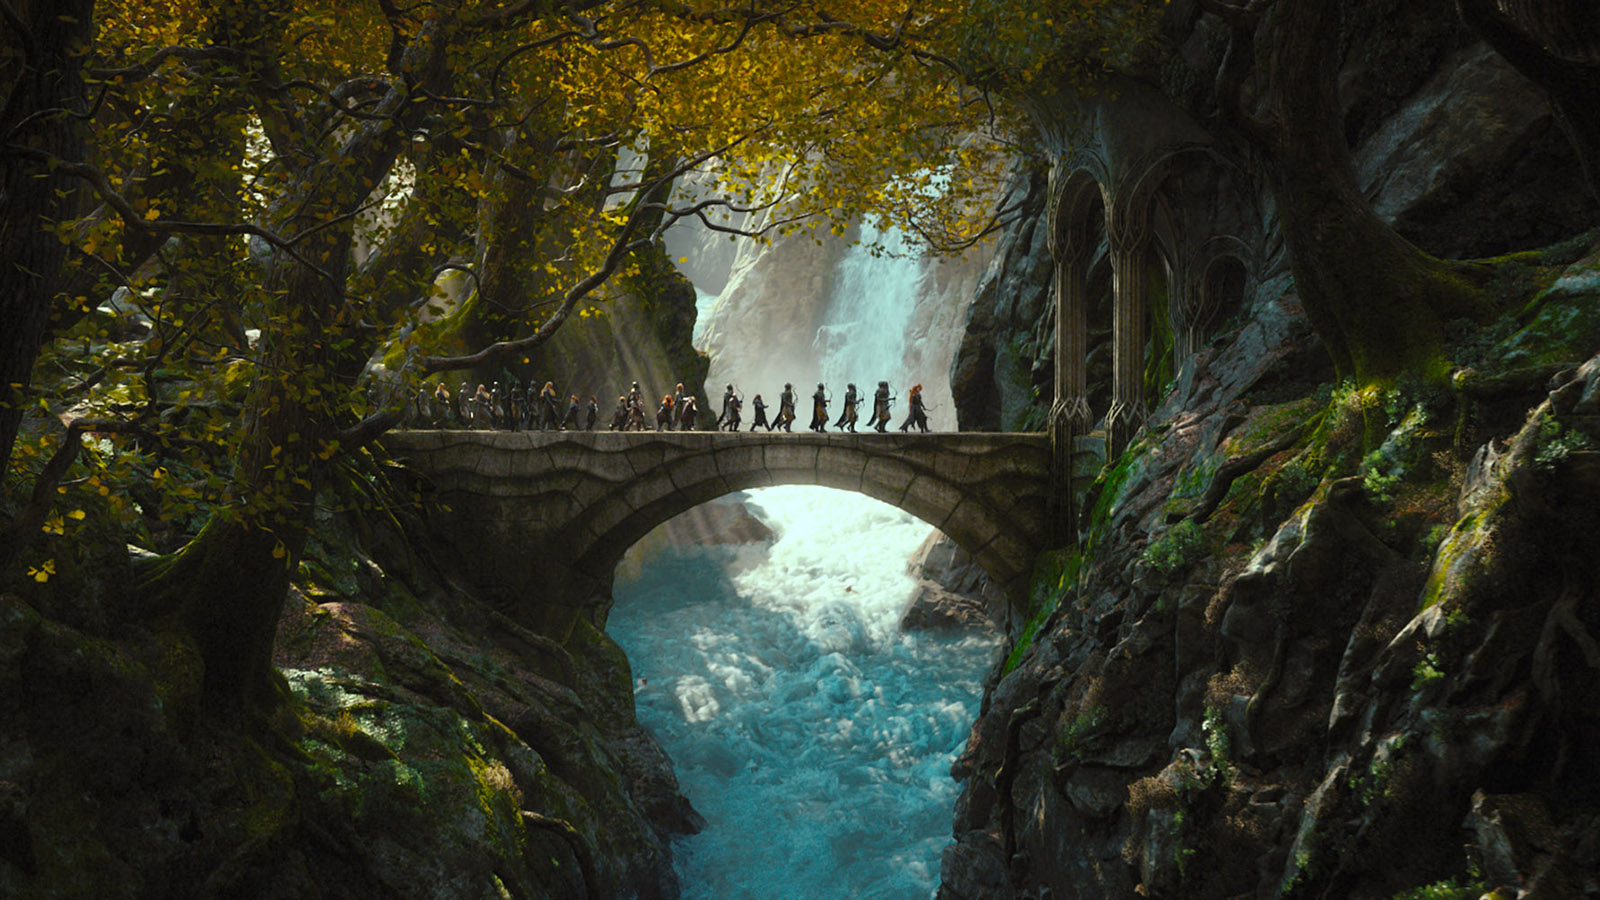 Lord Of The Rings Landscape Wallpapers 1080p For Desktop Wallpaper